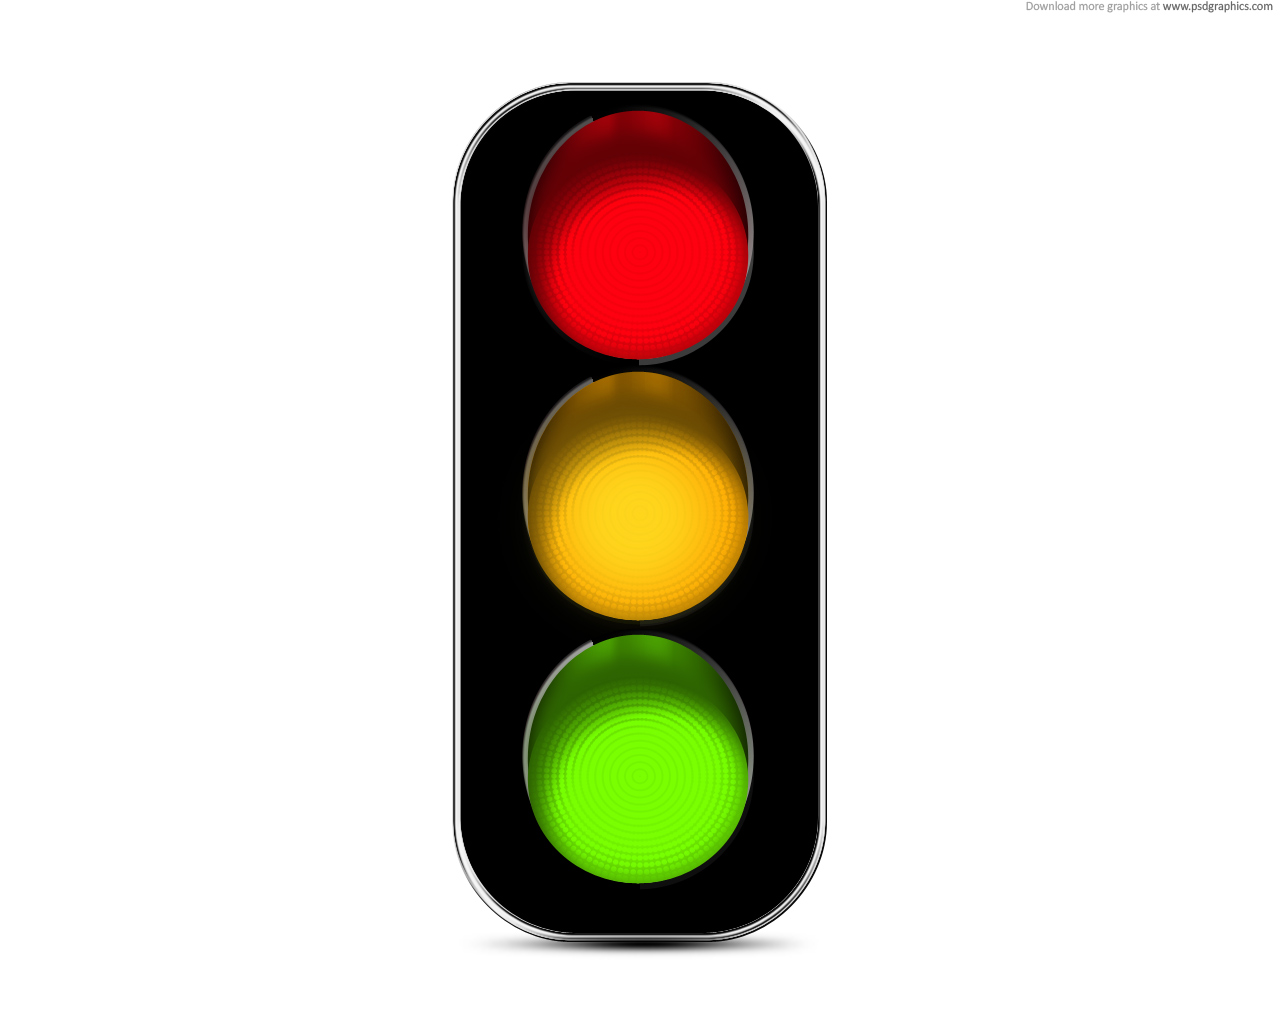 13 green traffic lights free cliparts that you can download to you ...